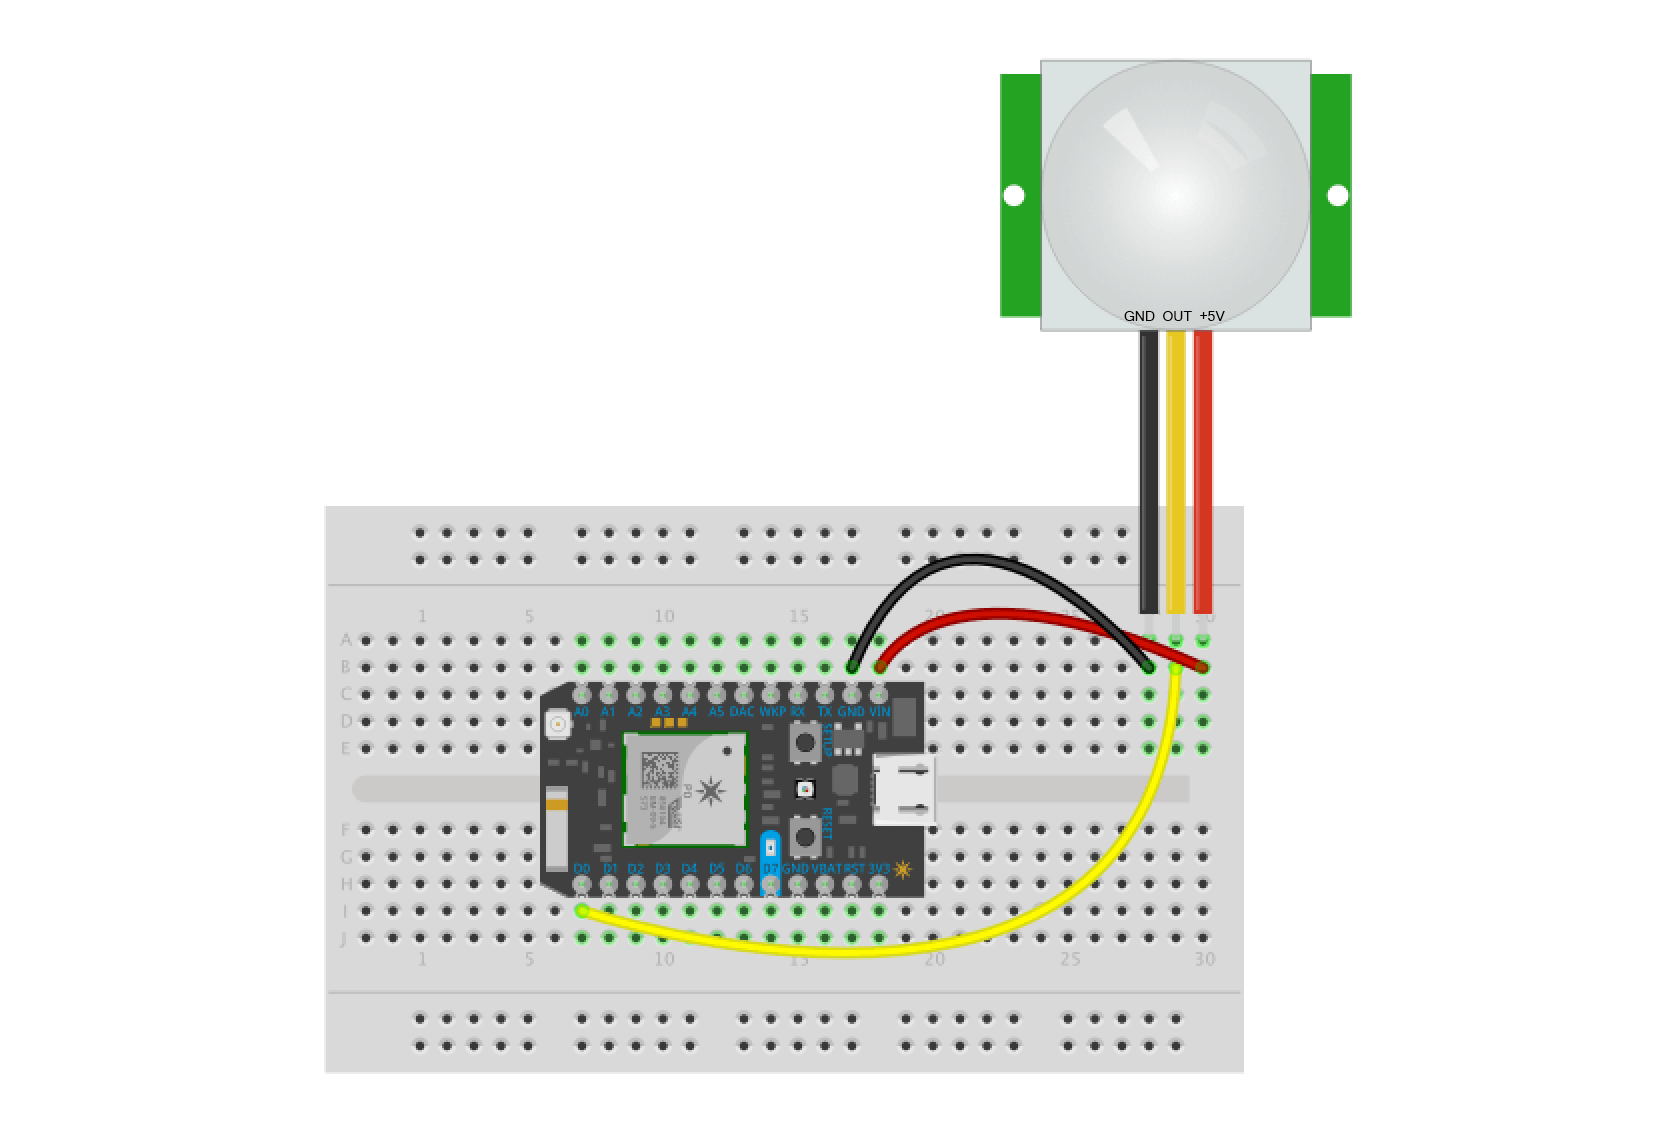 Connecting a PIR sensor to a Particle Photon